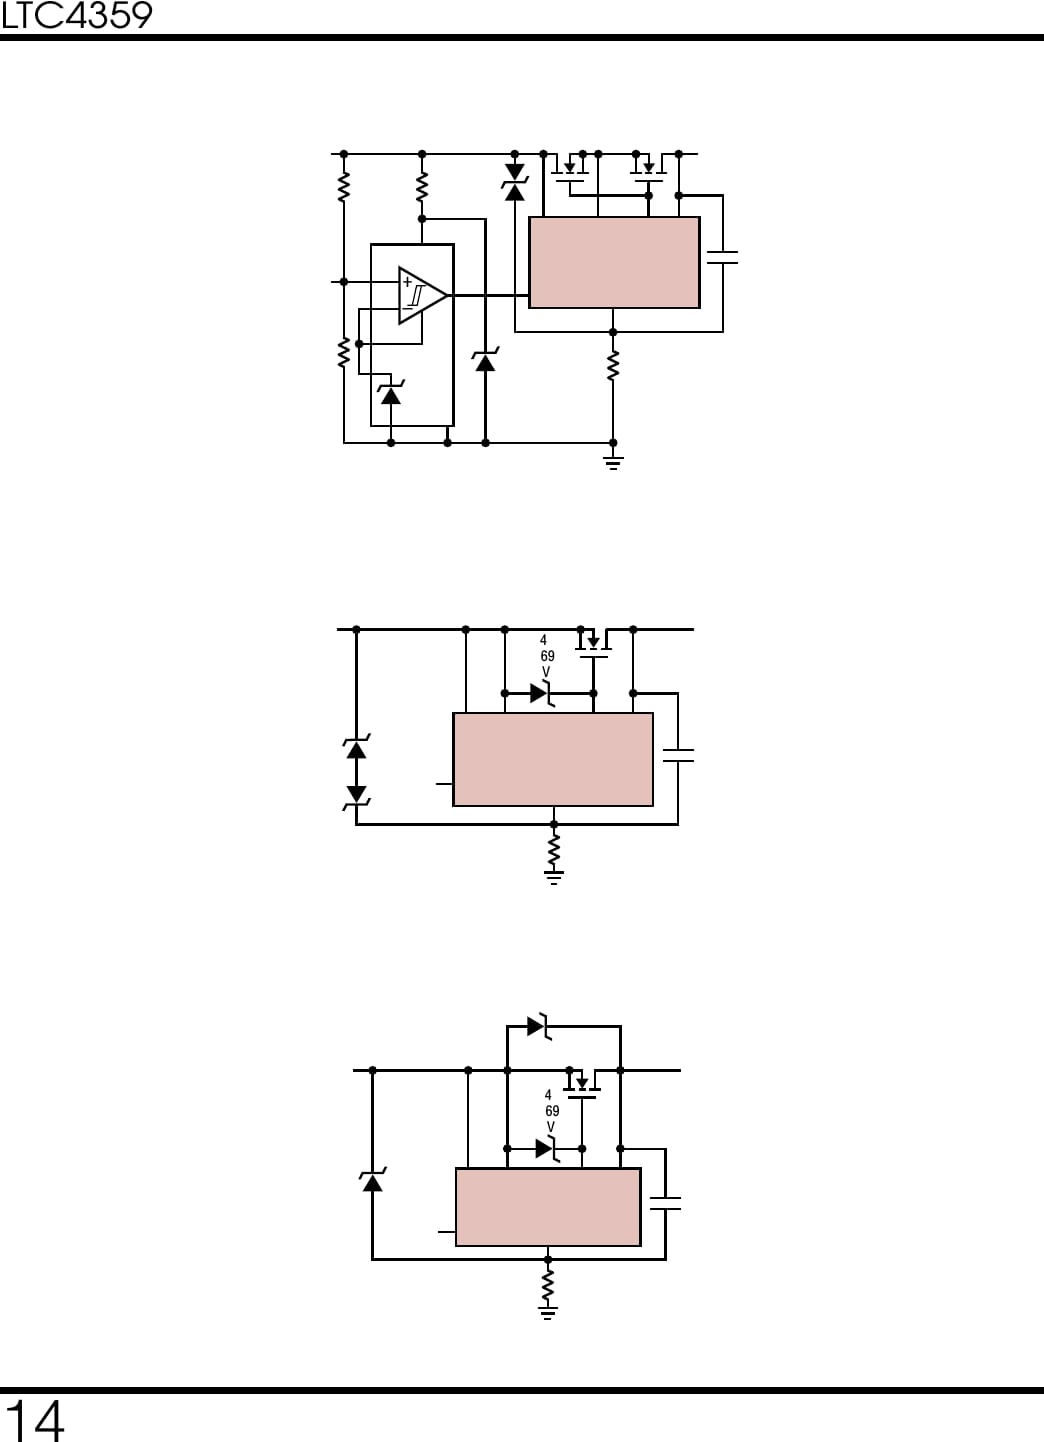 hight resolution of 48v wiring diagram fair play best wiring libraryfairplay golf cart wiring diagram 12v ltc4359 datasheet linear